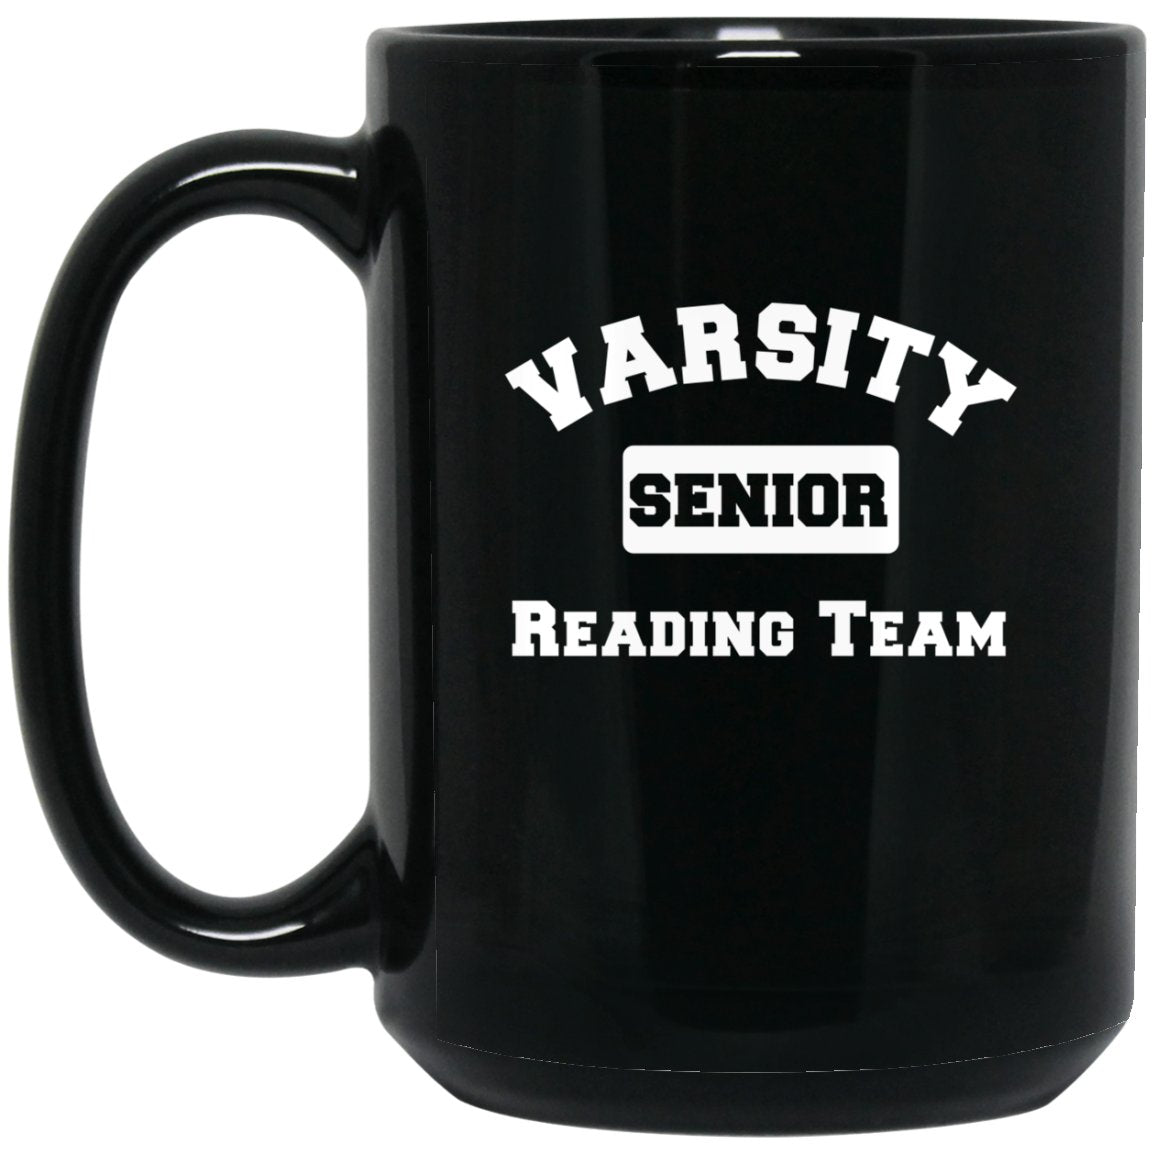 Funny Book Lover Mug - Varsity Reading Team Mug Large Black Mug